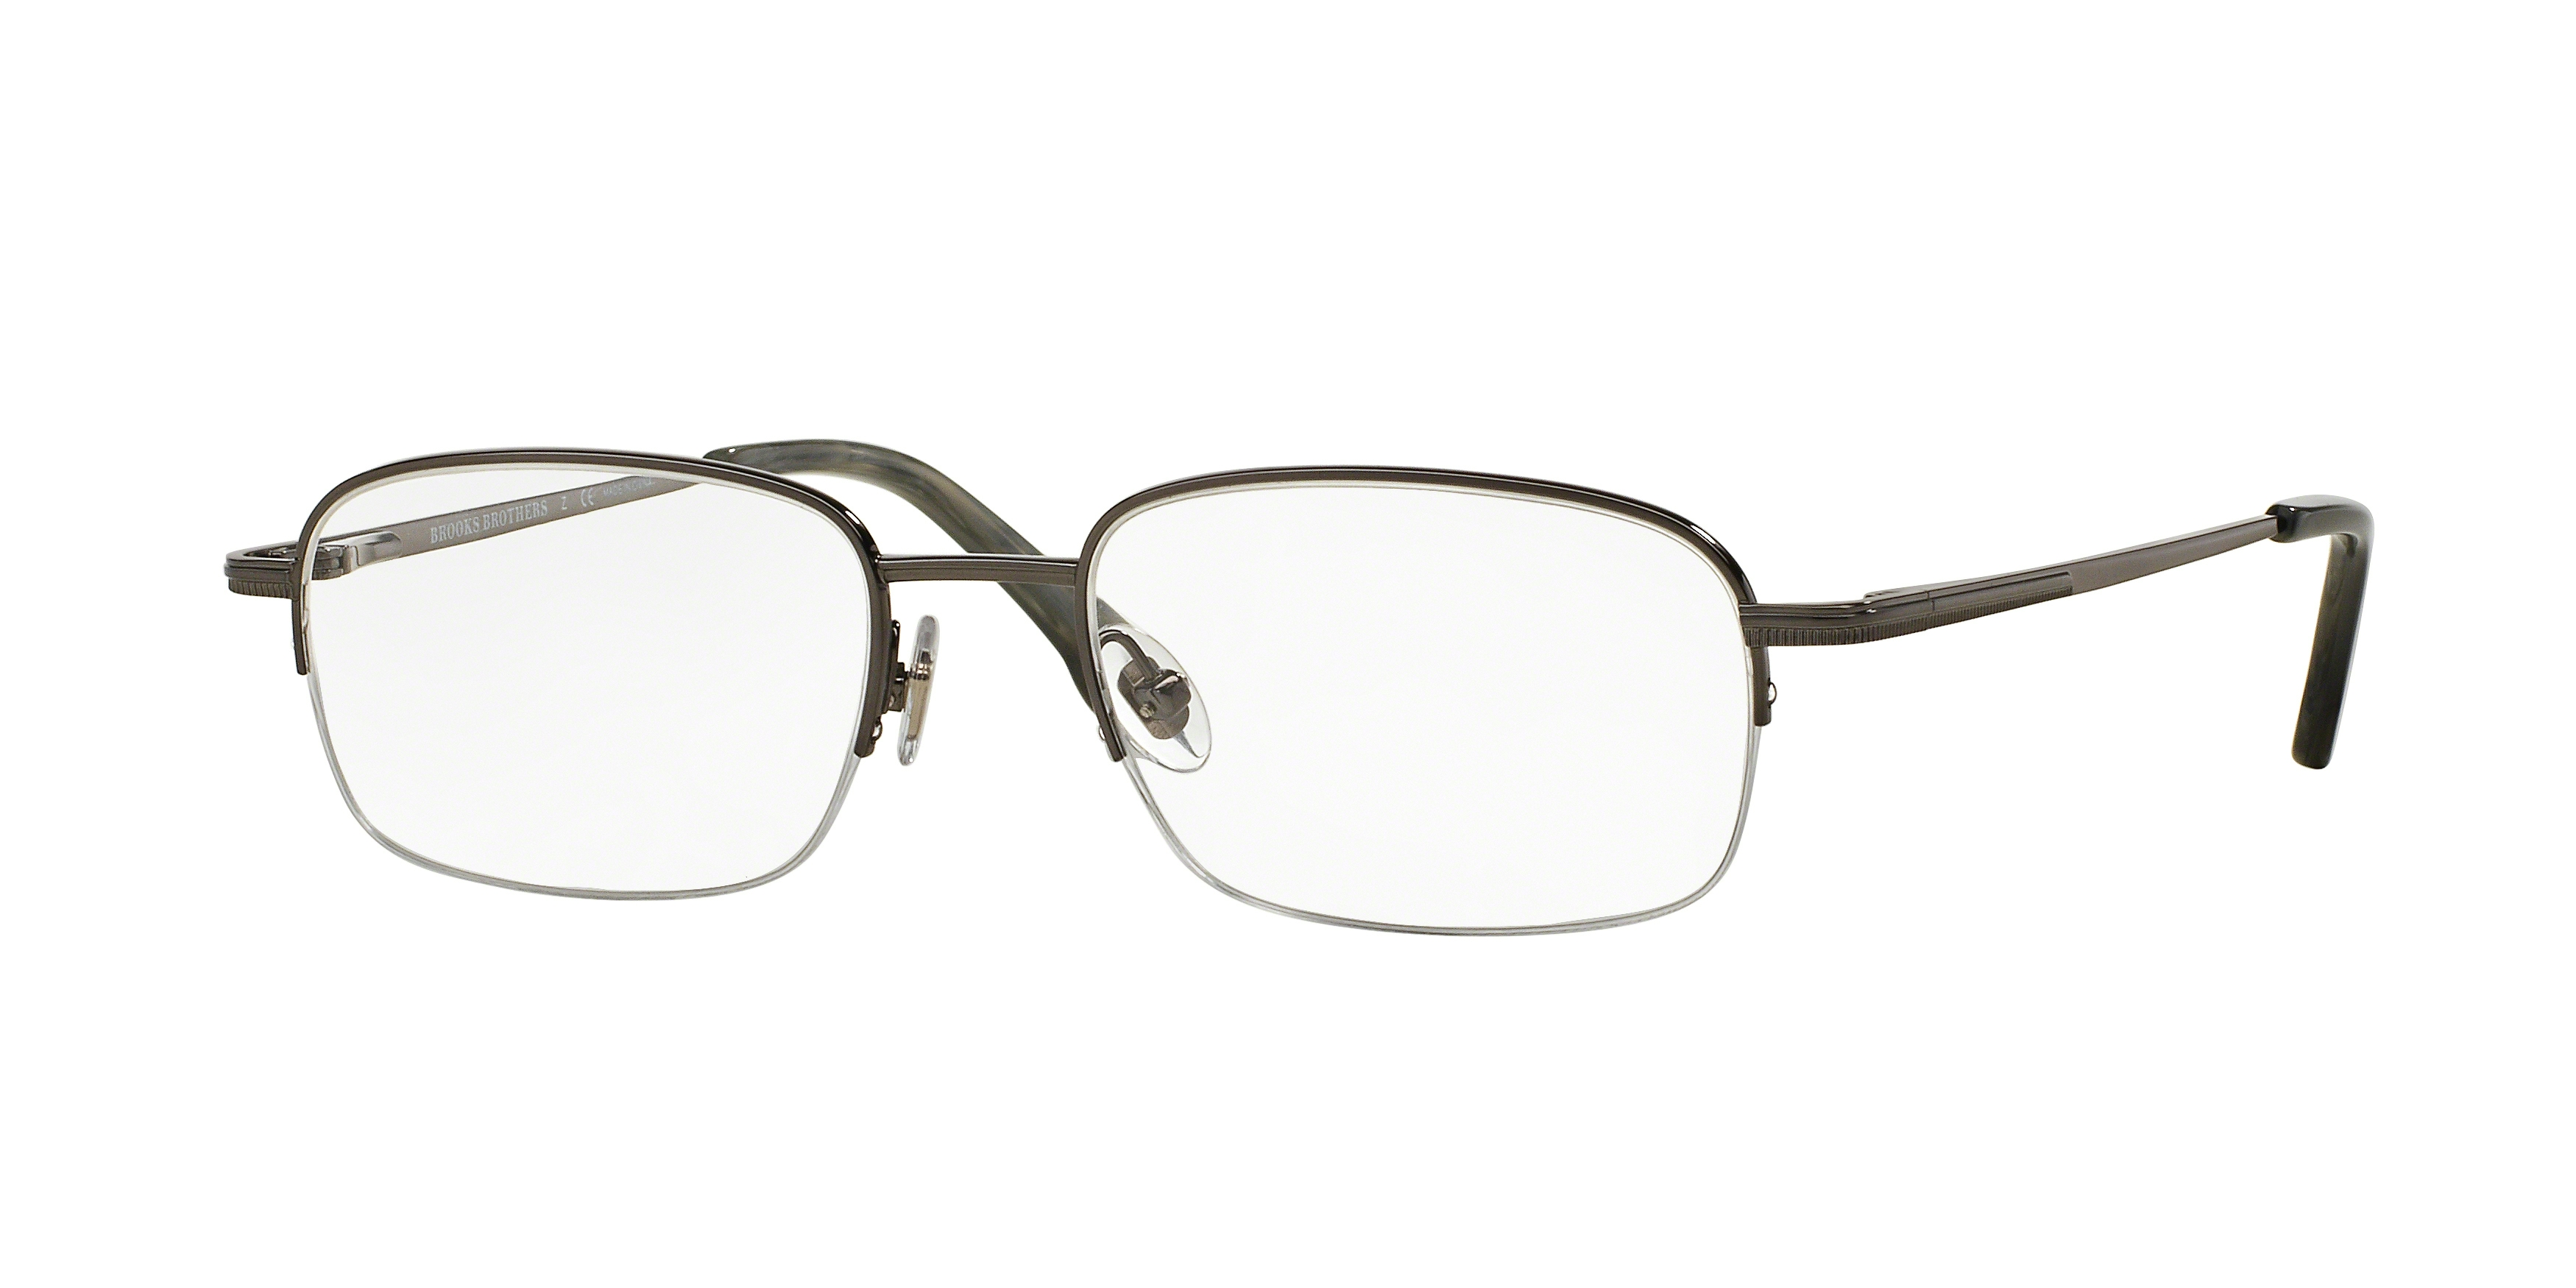 31ae6c5c01 Brooks Brothers Bb 487t Eyeglasses BB487T with Rx Prescription Lenses FREE  S H BB487T-1511T-52. Brooks Brothers Single Vision Eyeglasses for Men.